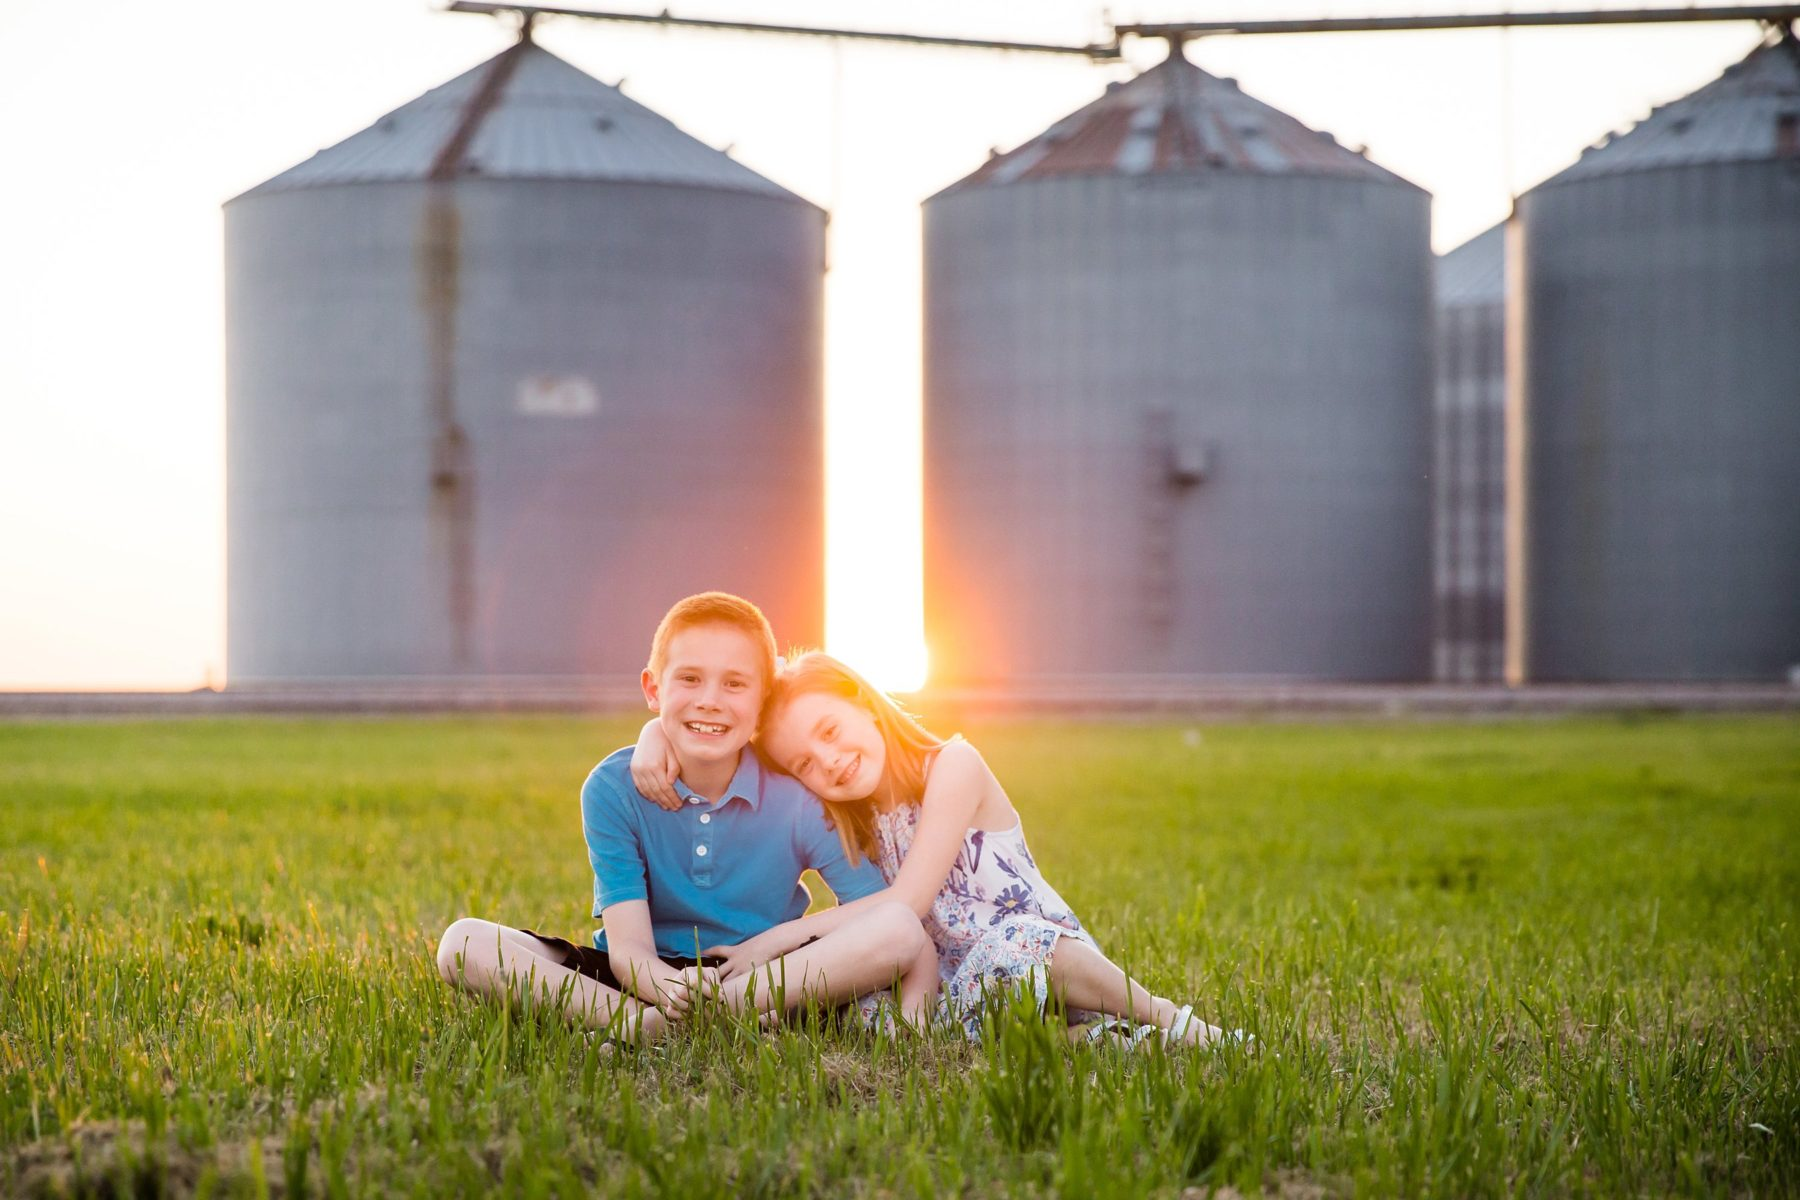 brother and sister in front of silos at sunset